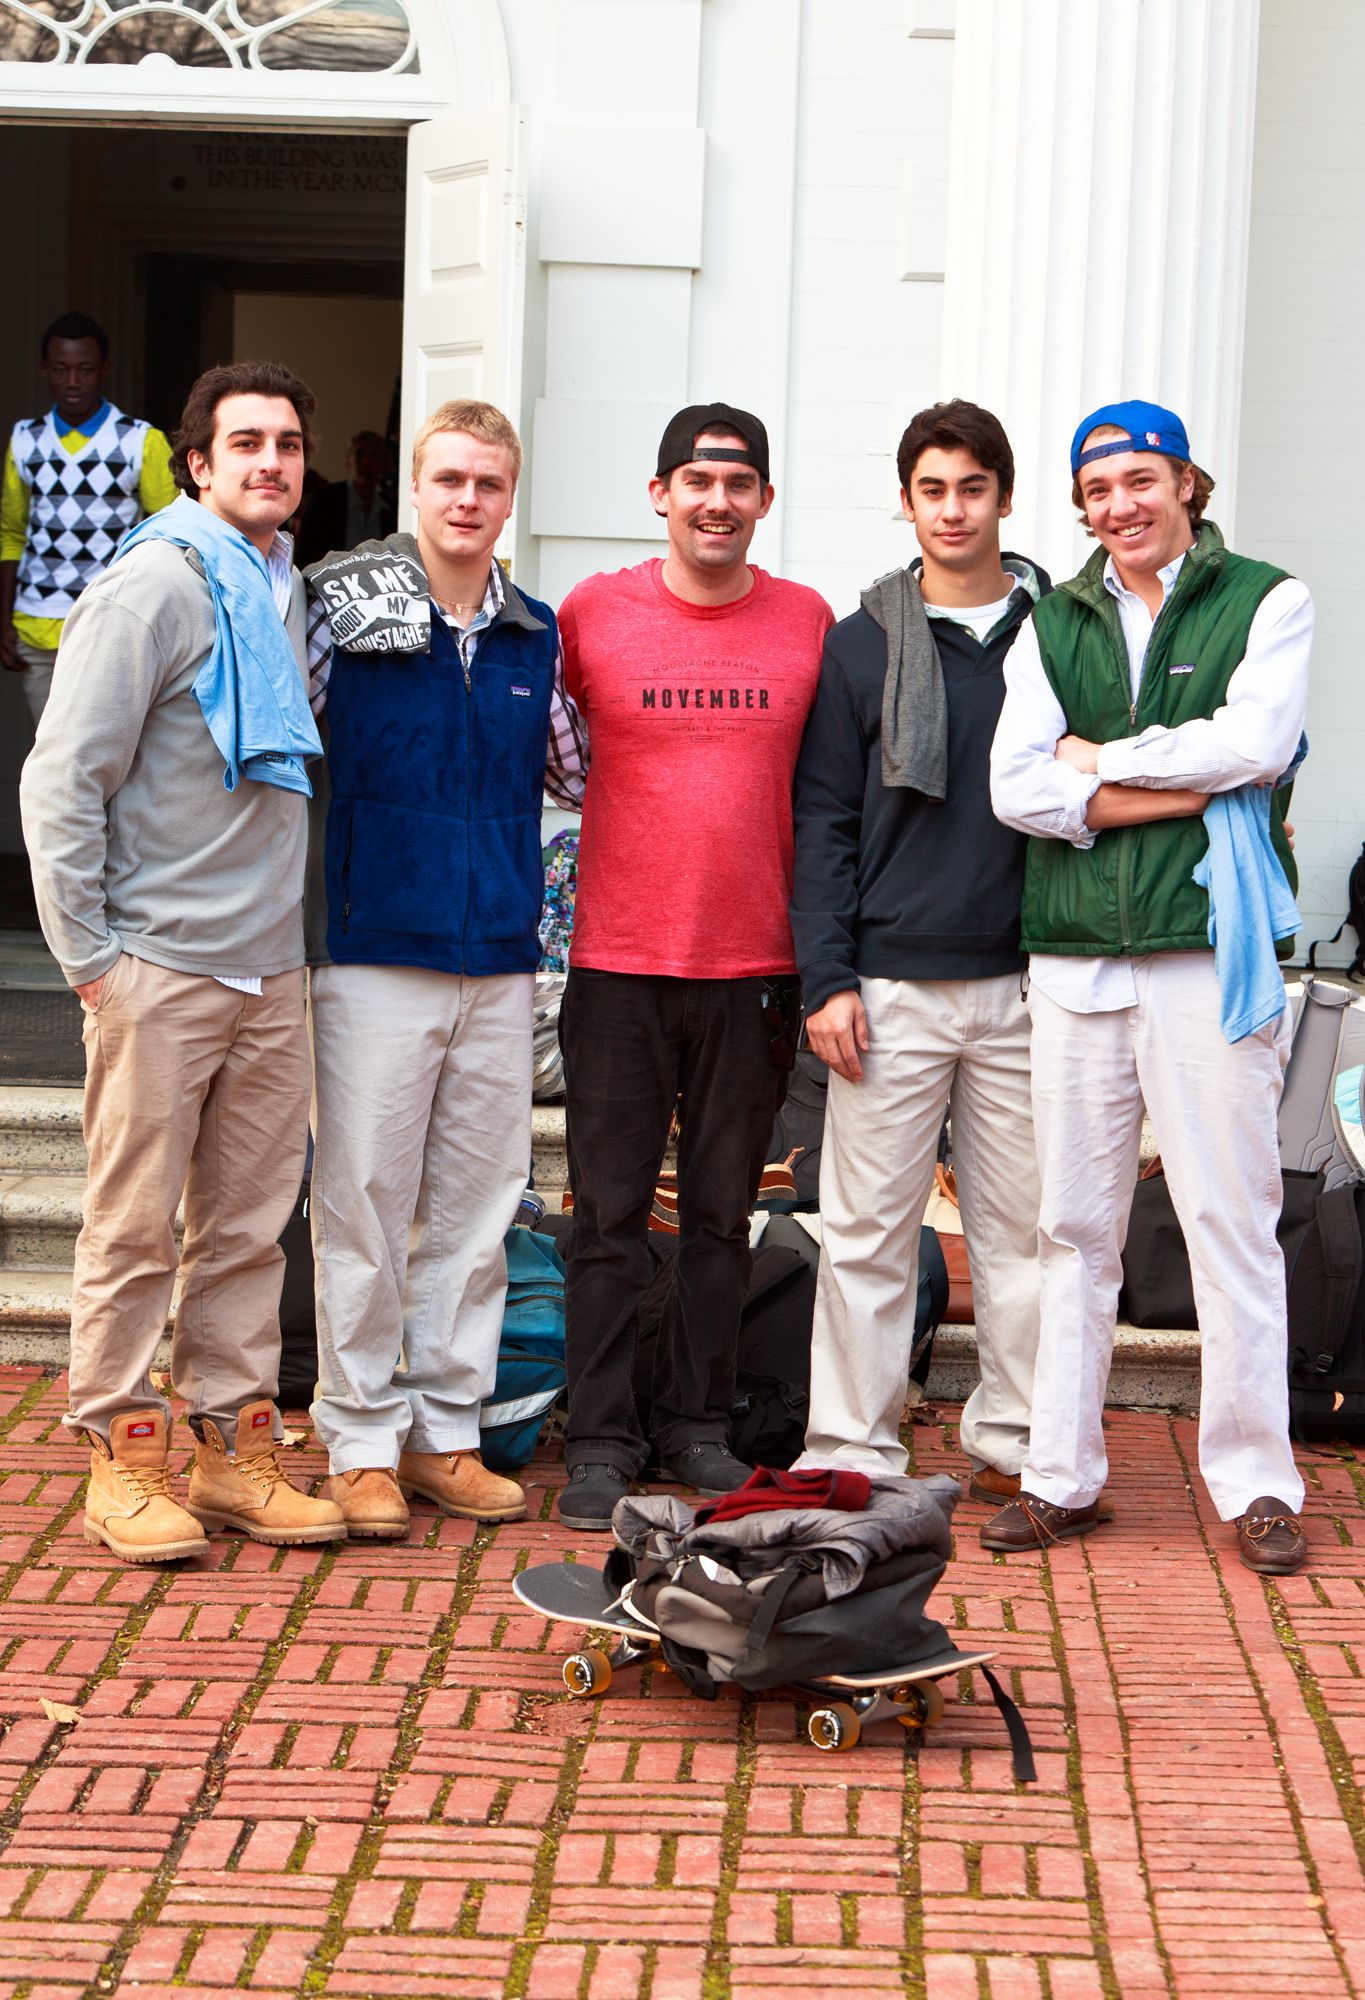 Jack Choate '97 (center) pays visit to Millbrook School in celebration of Movember